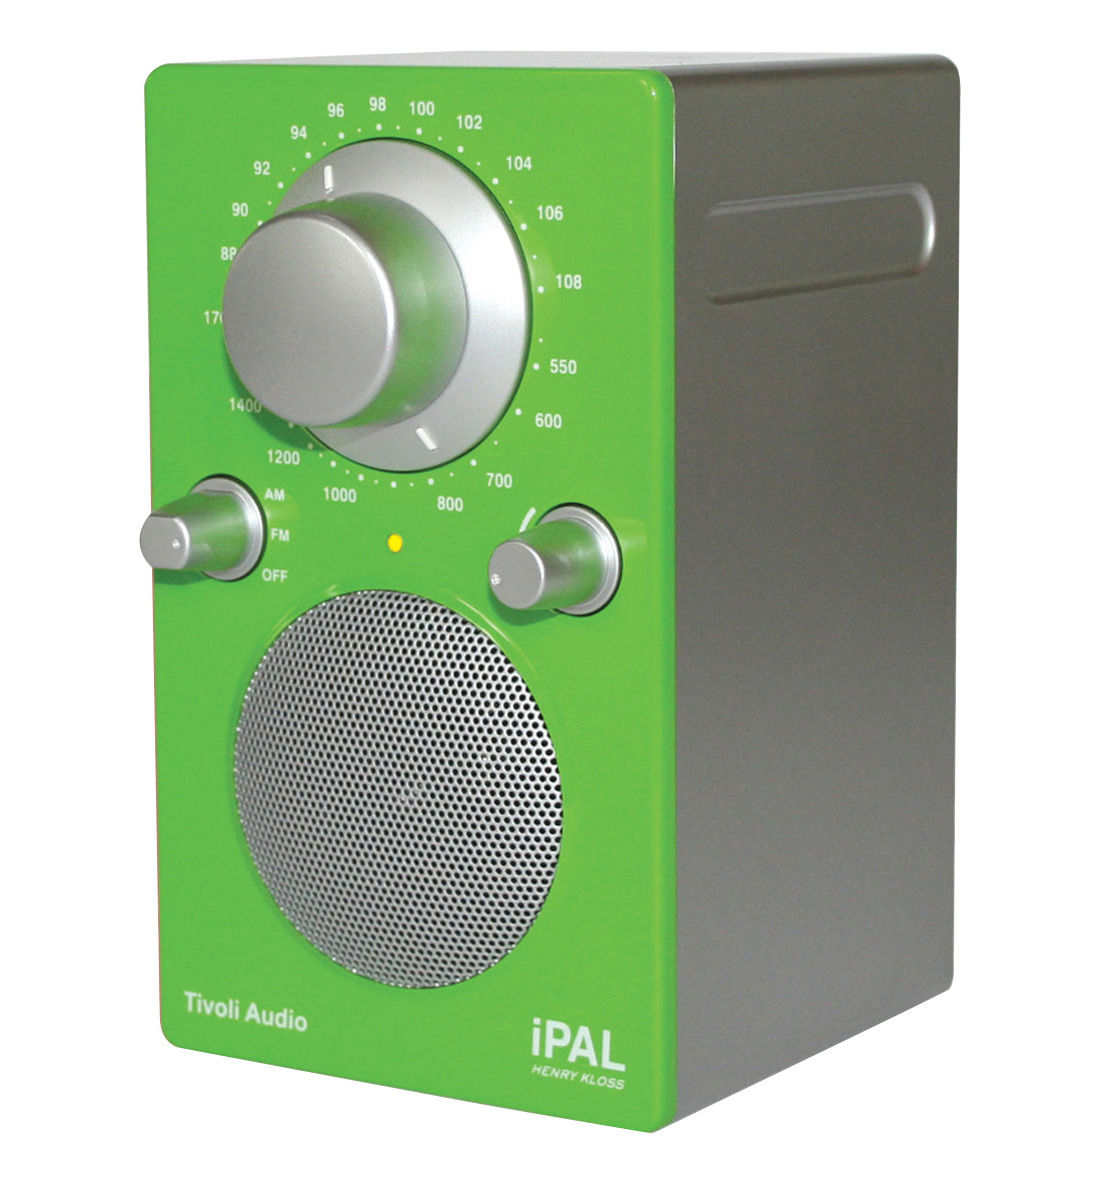 radio ipal enceinte portative compatible ipod vert tivoli audio. Black Bedroom Furniture Sets. Home Design Ideas